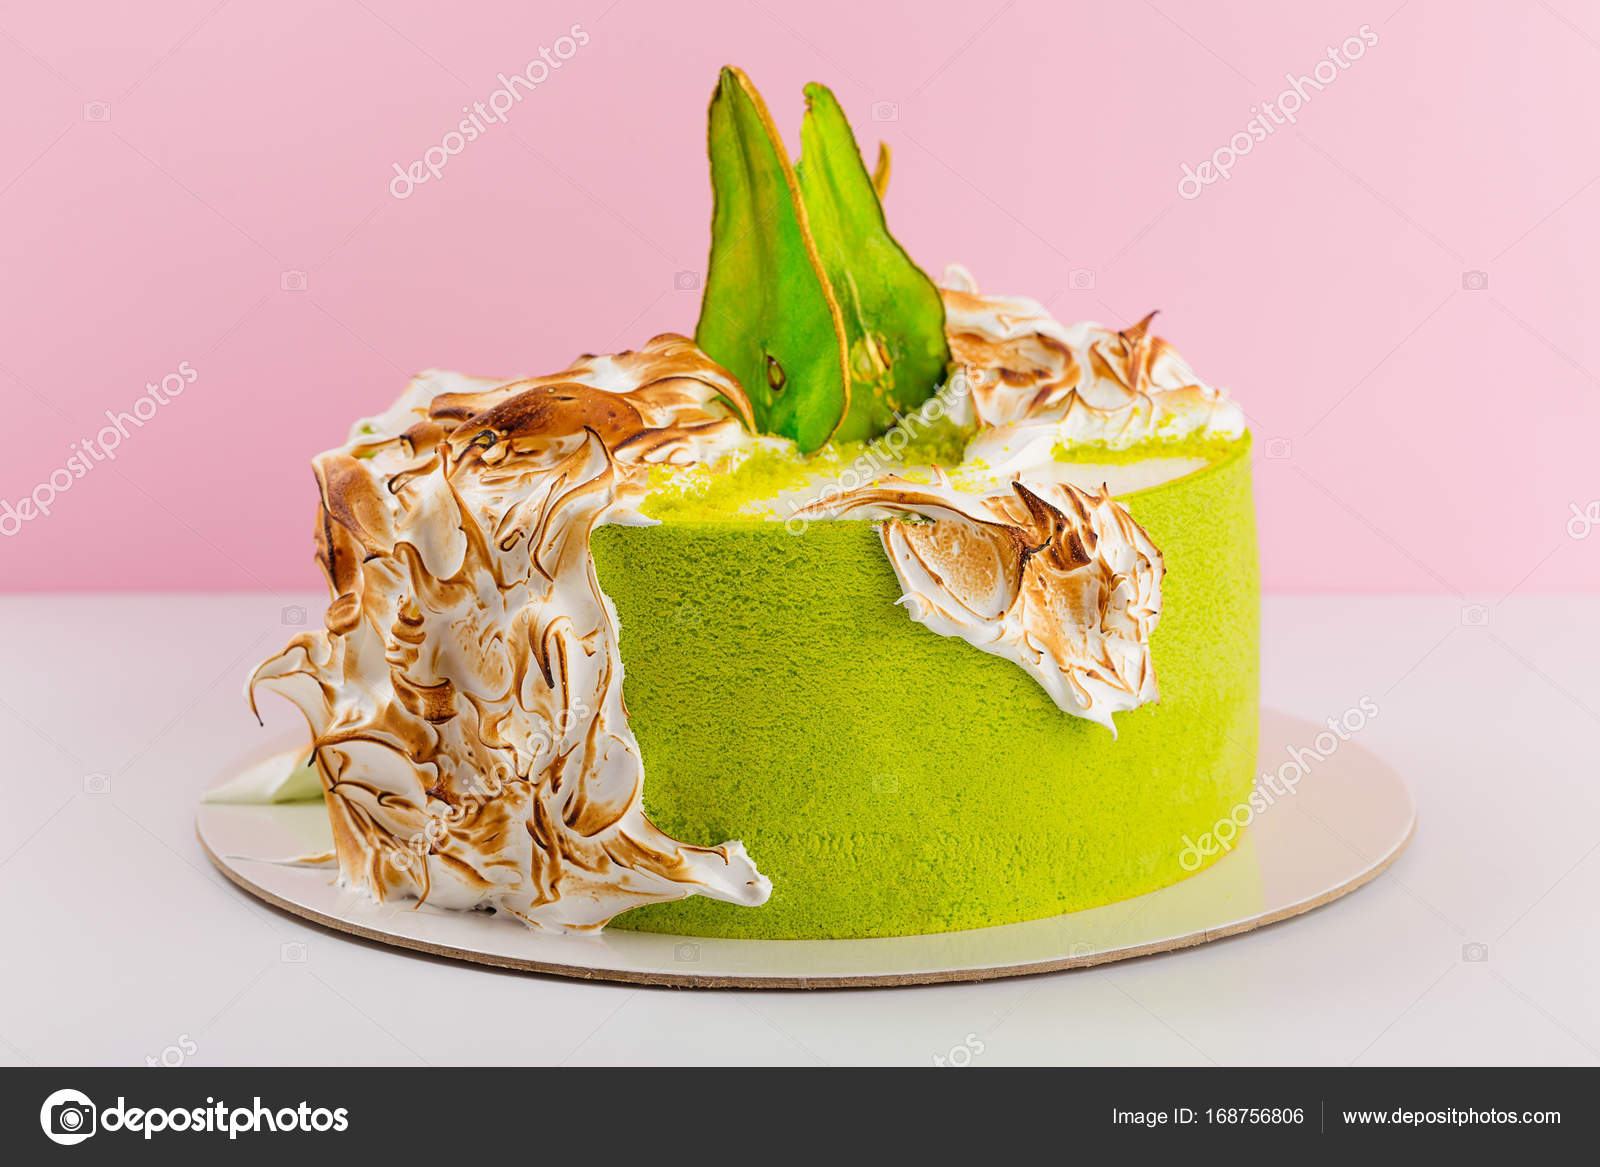 Green Cake Decorated With Burned Meringue And Colored Pear Slice